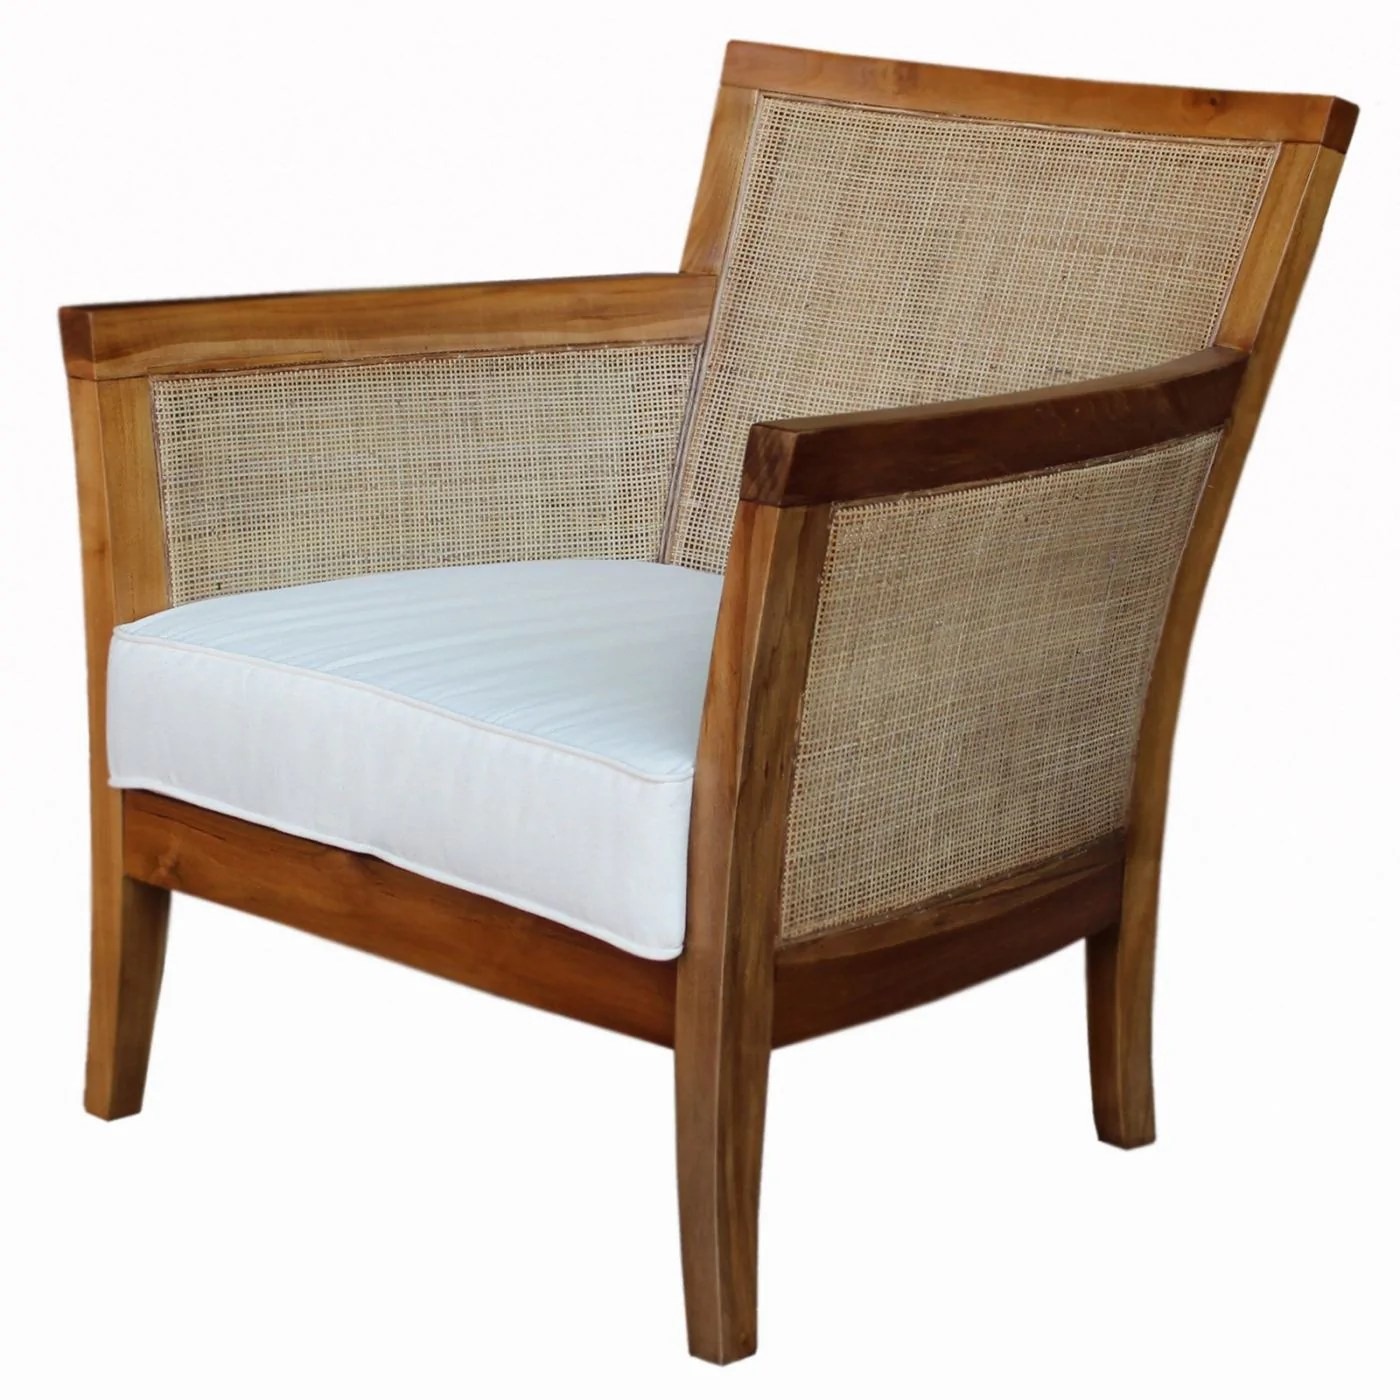 Rattan Accent Chair New Pacific Direct Carter Rattan Arm Chair Coastal Washed Brown 2400013 Only 447 80 At Contemporary Furniture Warehouse